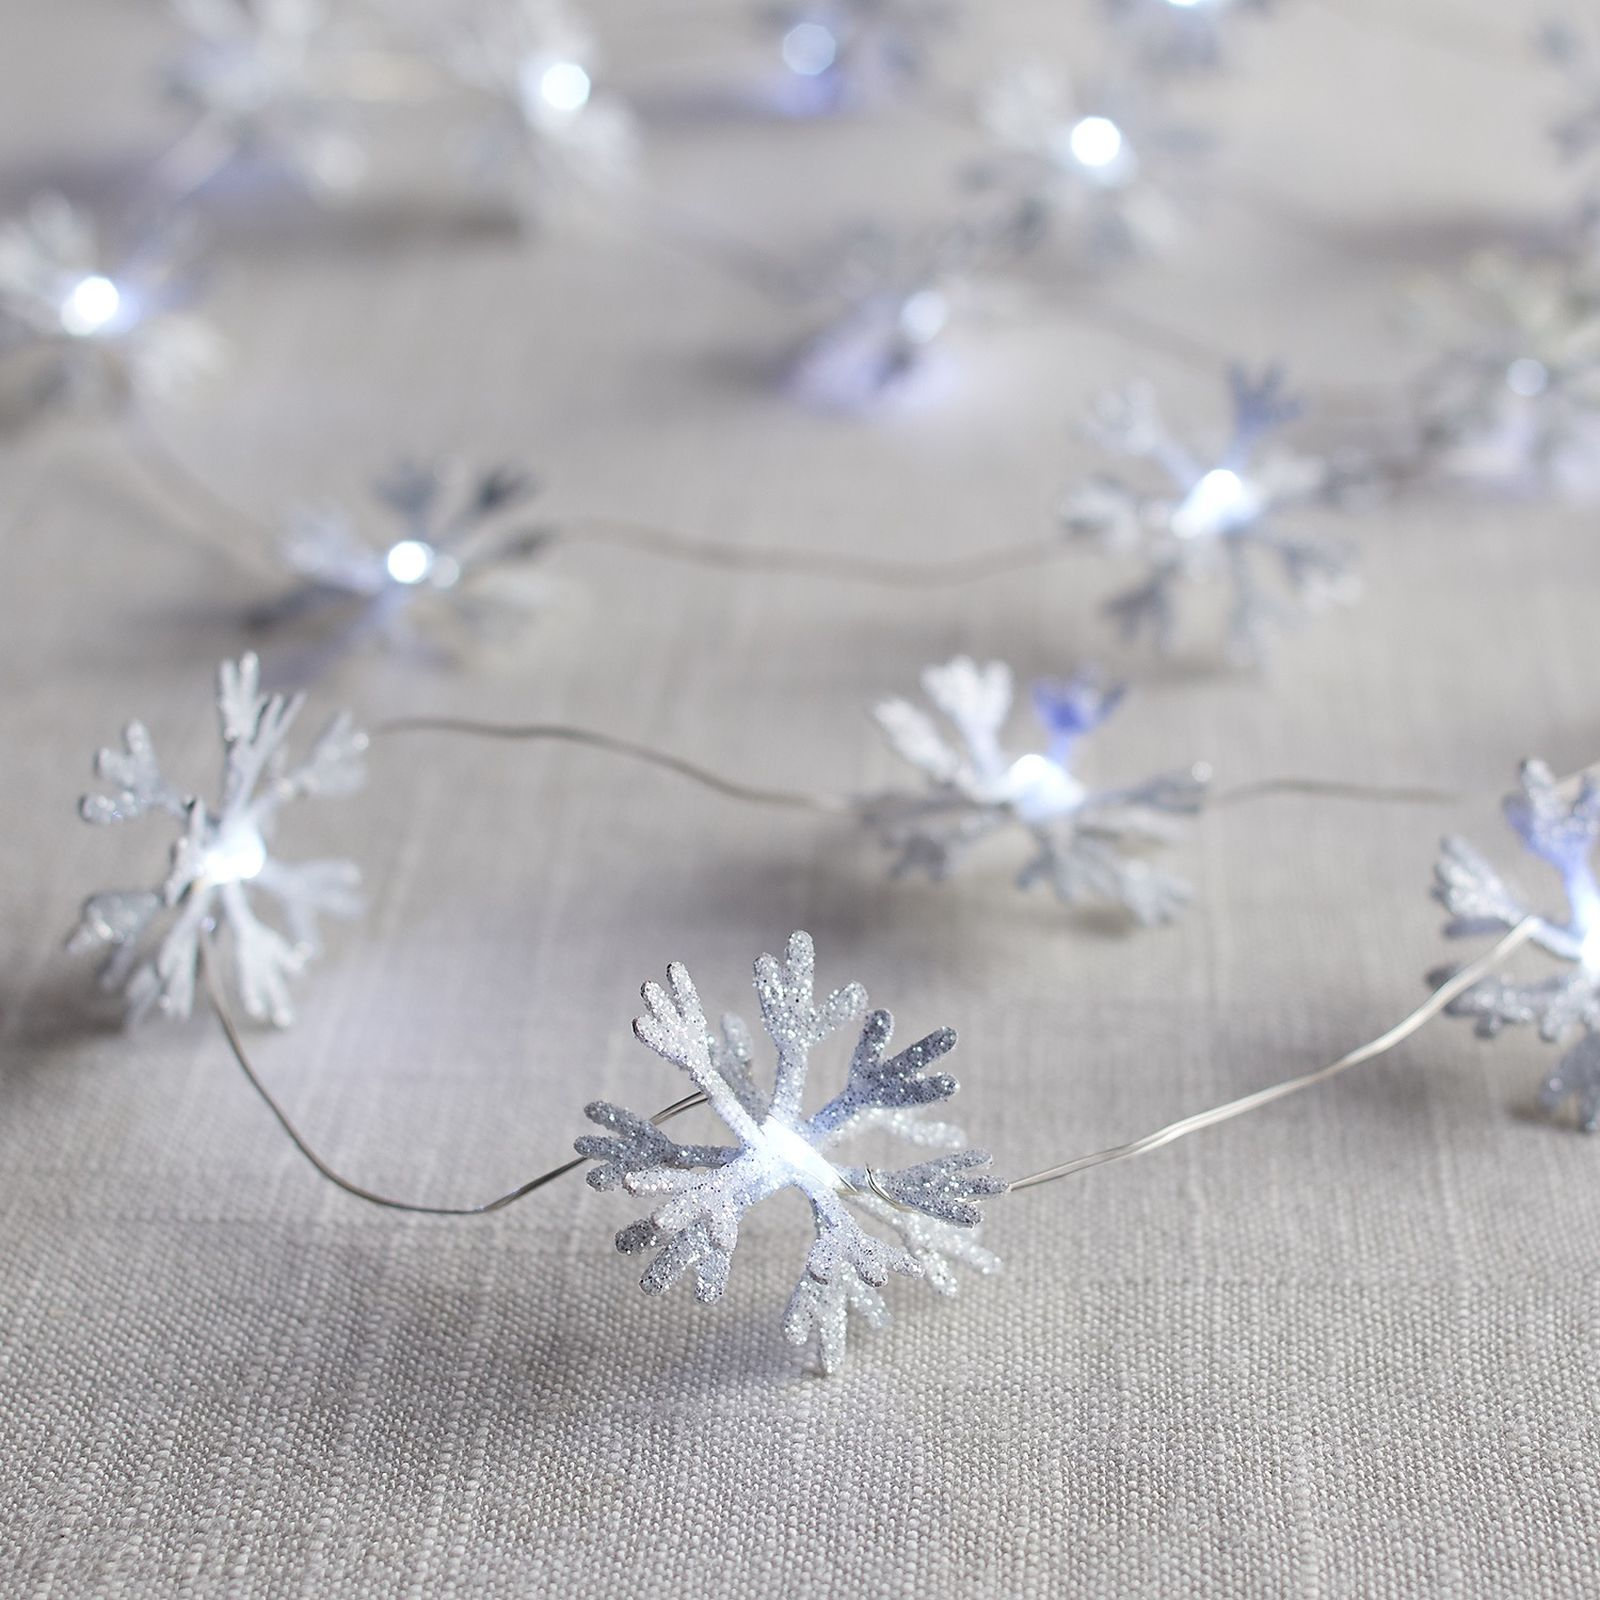 Pier 1 Imports Snowflake 10' LED Glimmer Strings